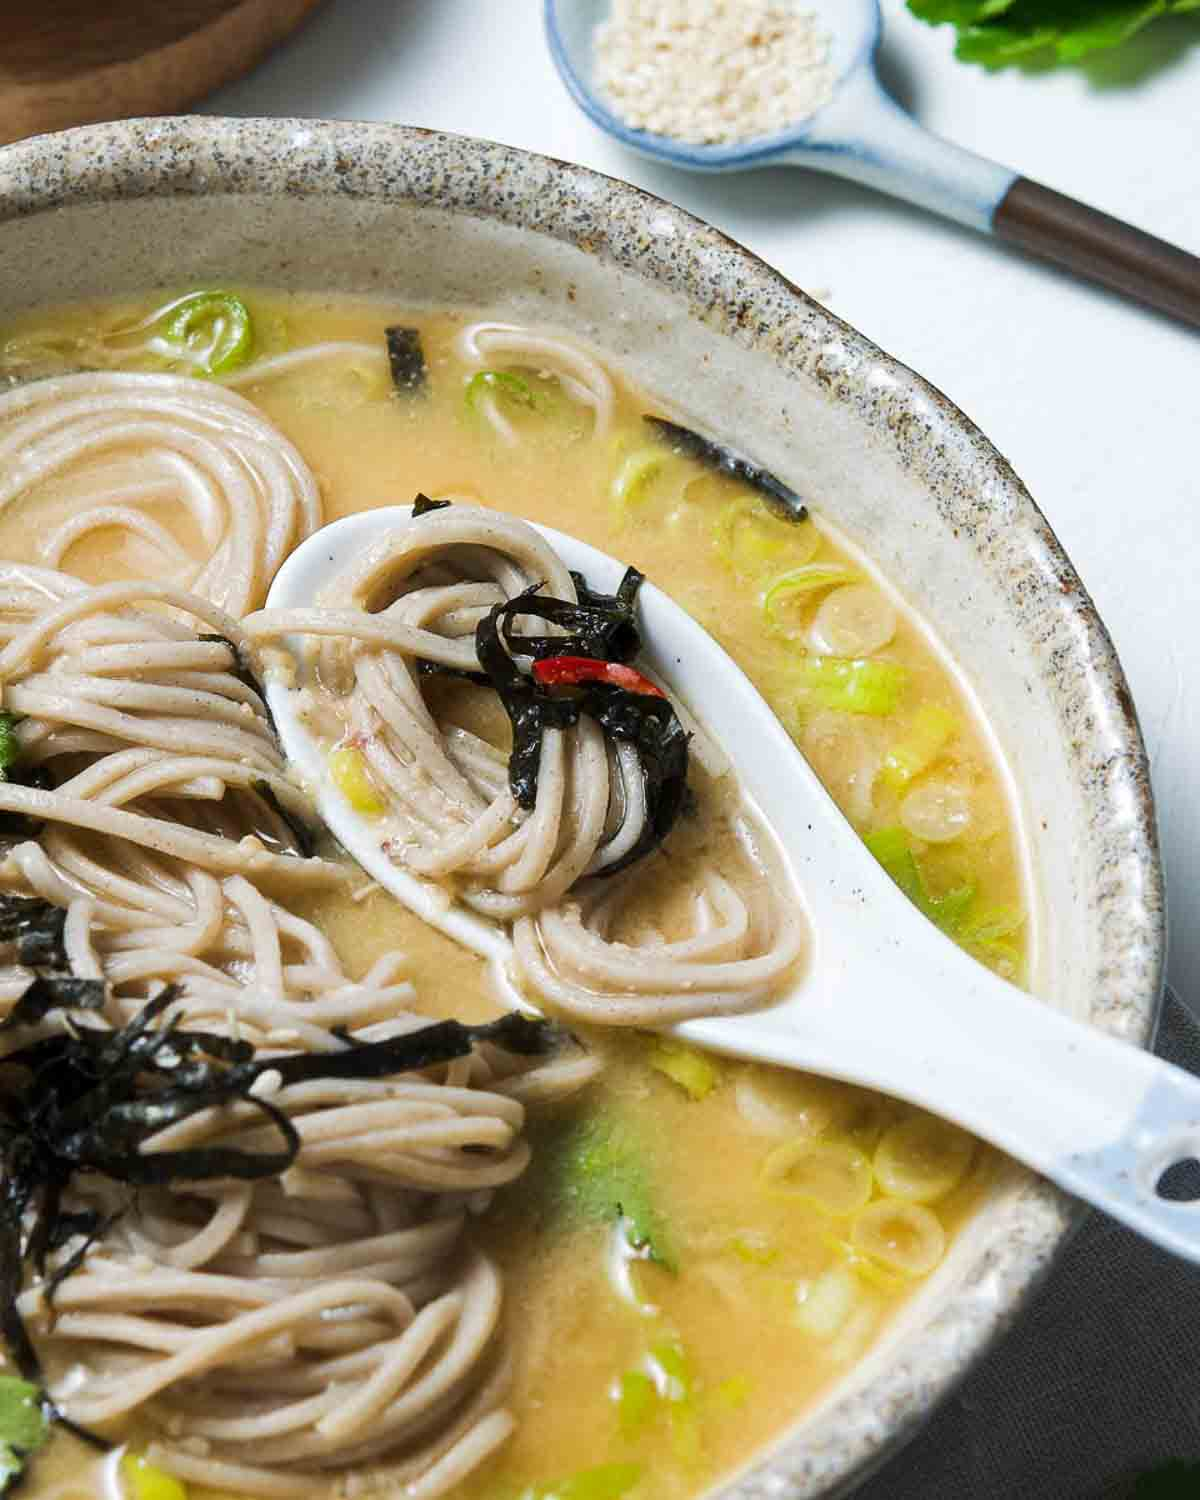 A spoon spooning out some noodles from a bowl of noodle soup.